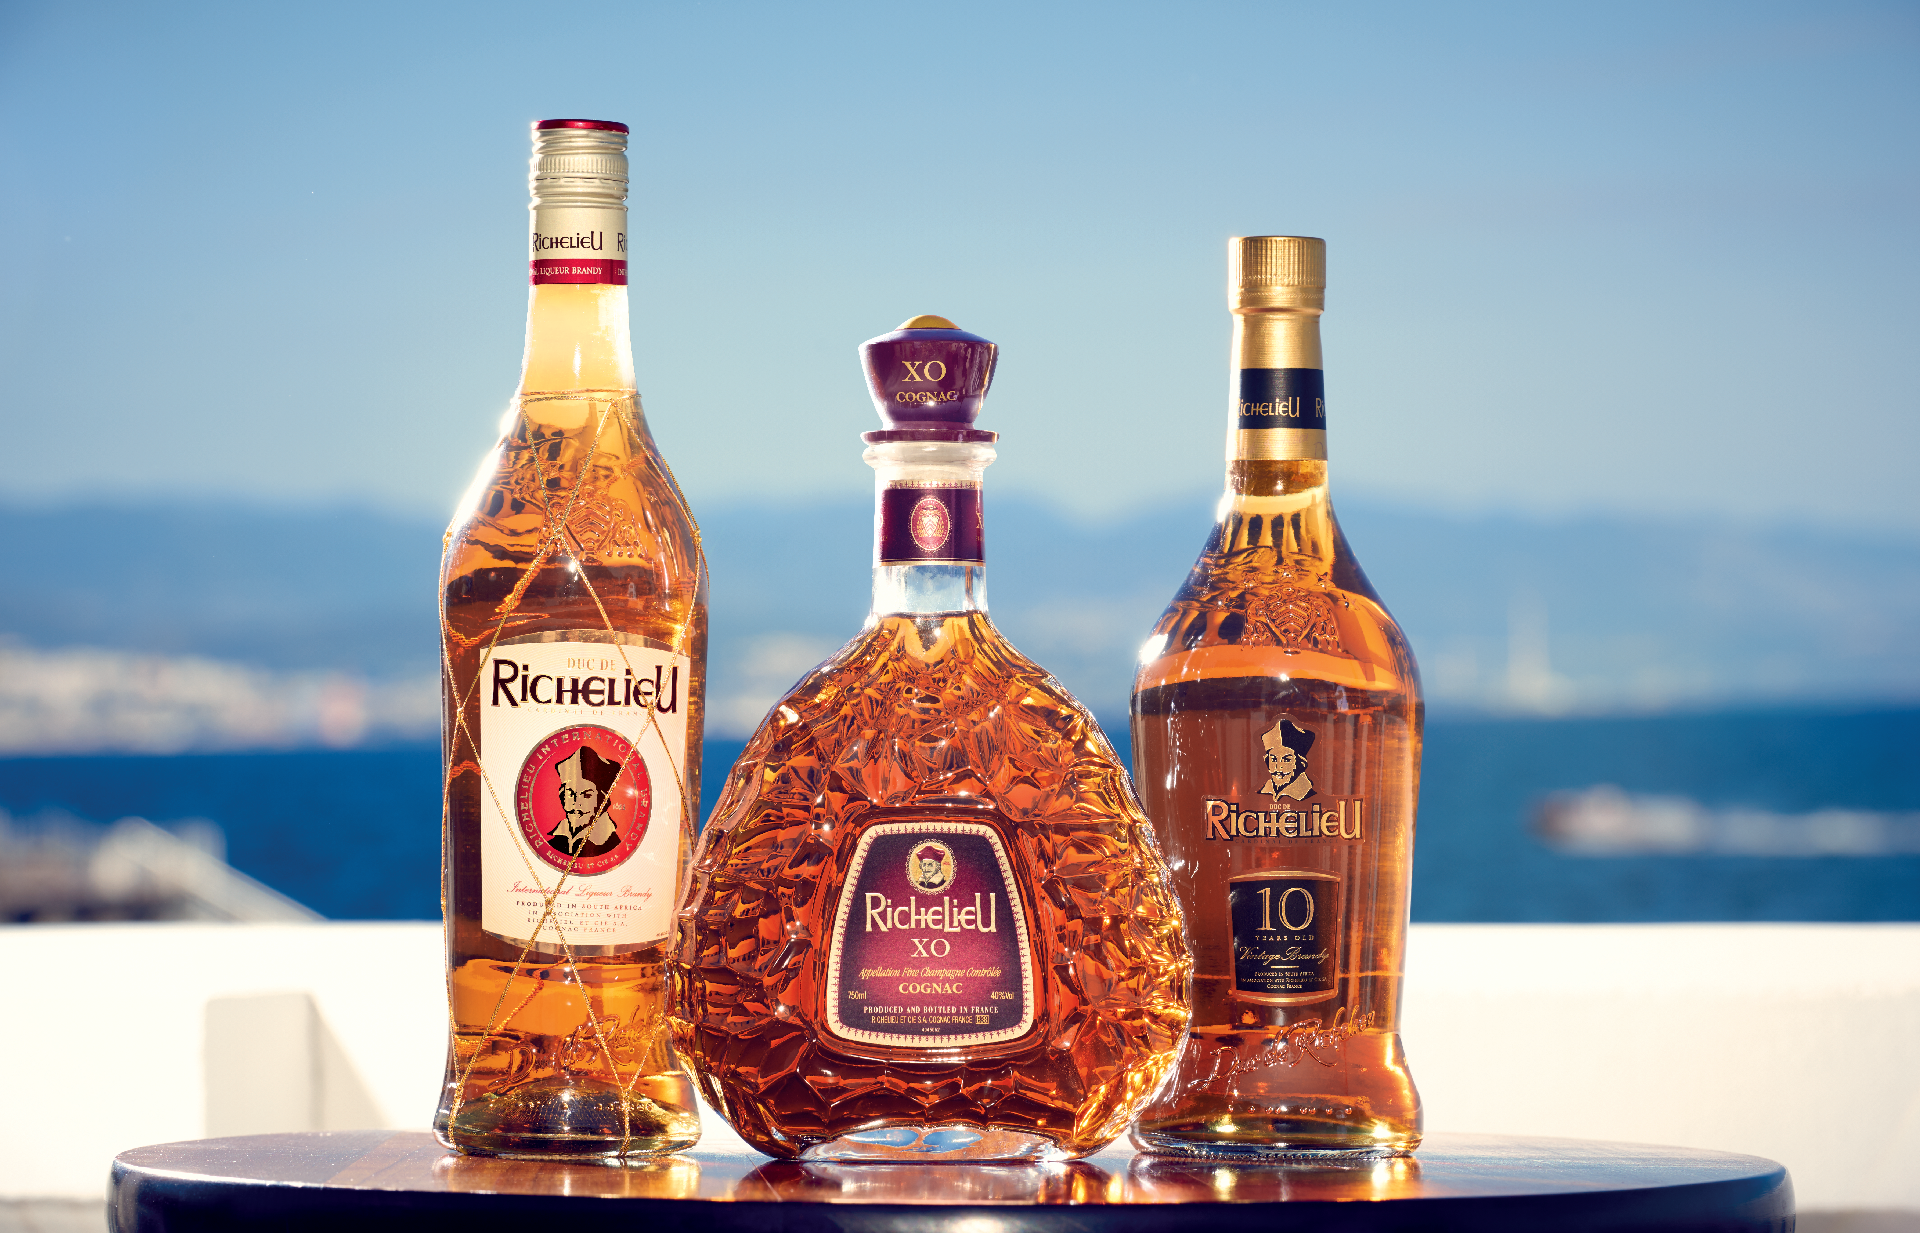 Alcohol Maker Distell Welcomes Lifting Of Alcohol Ban, Commits To Building Economy photo